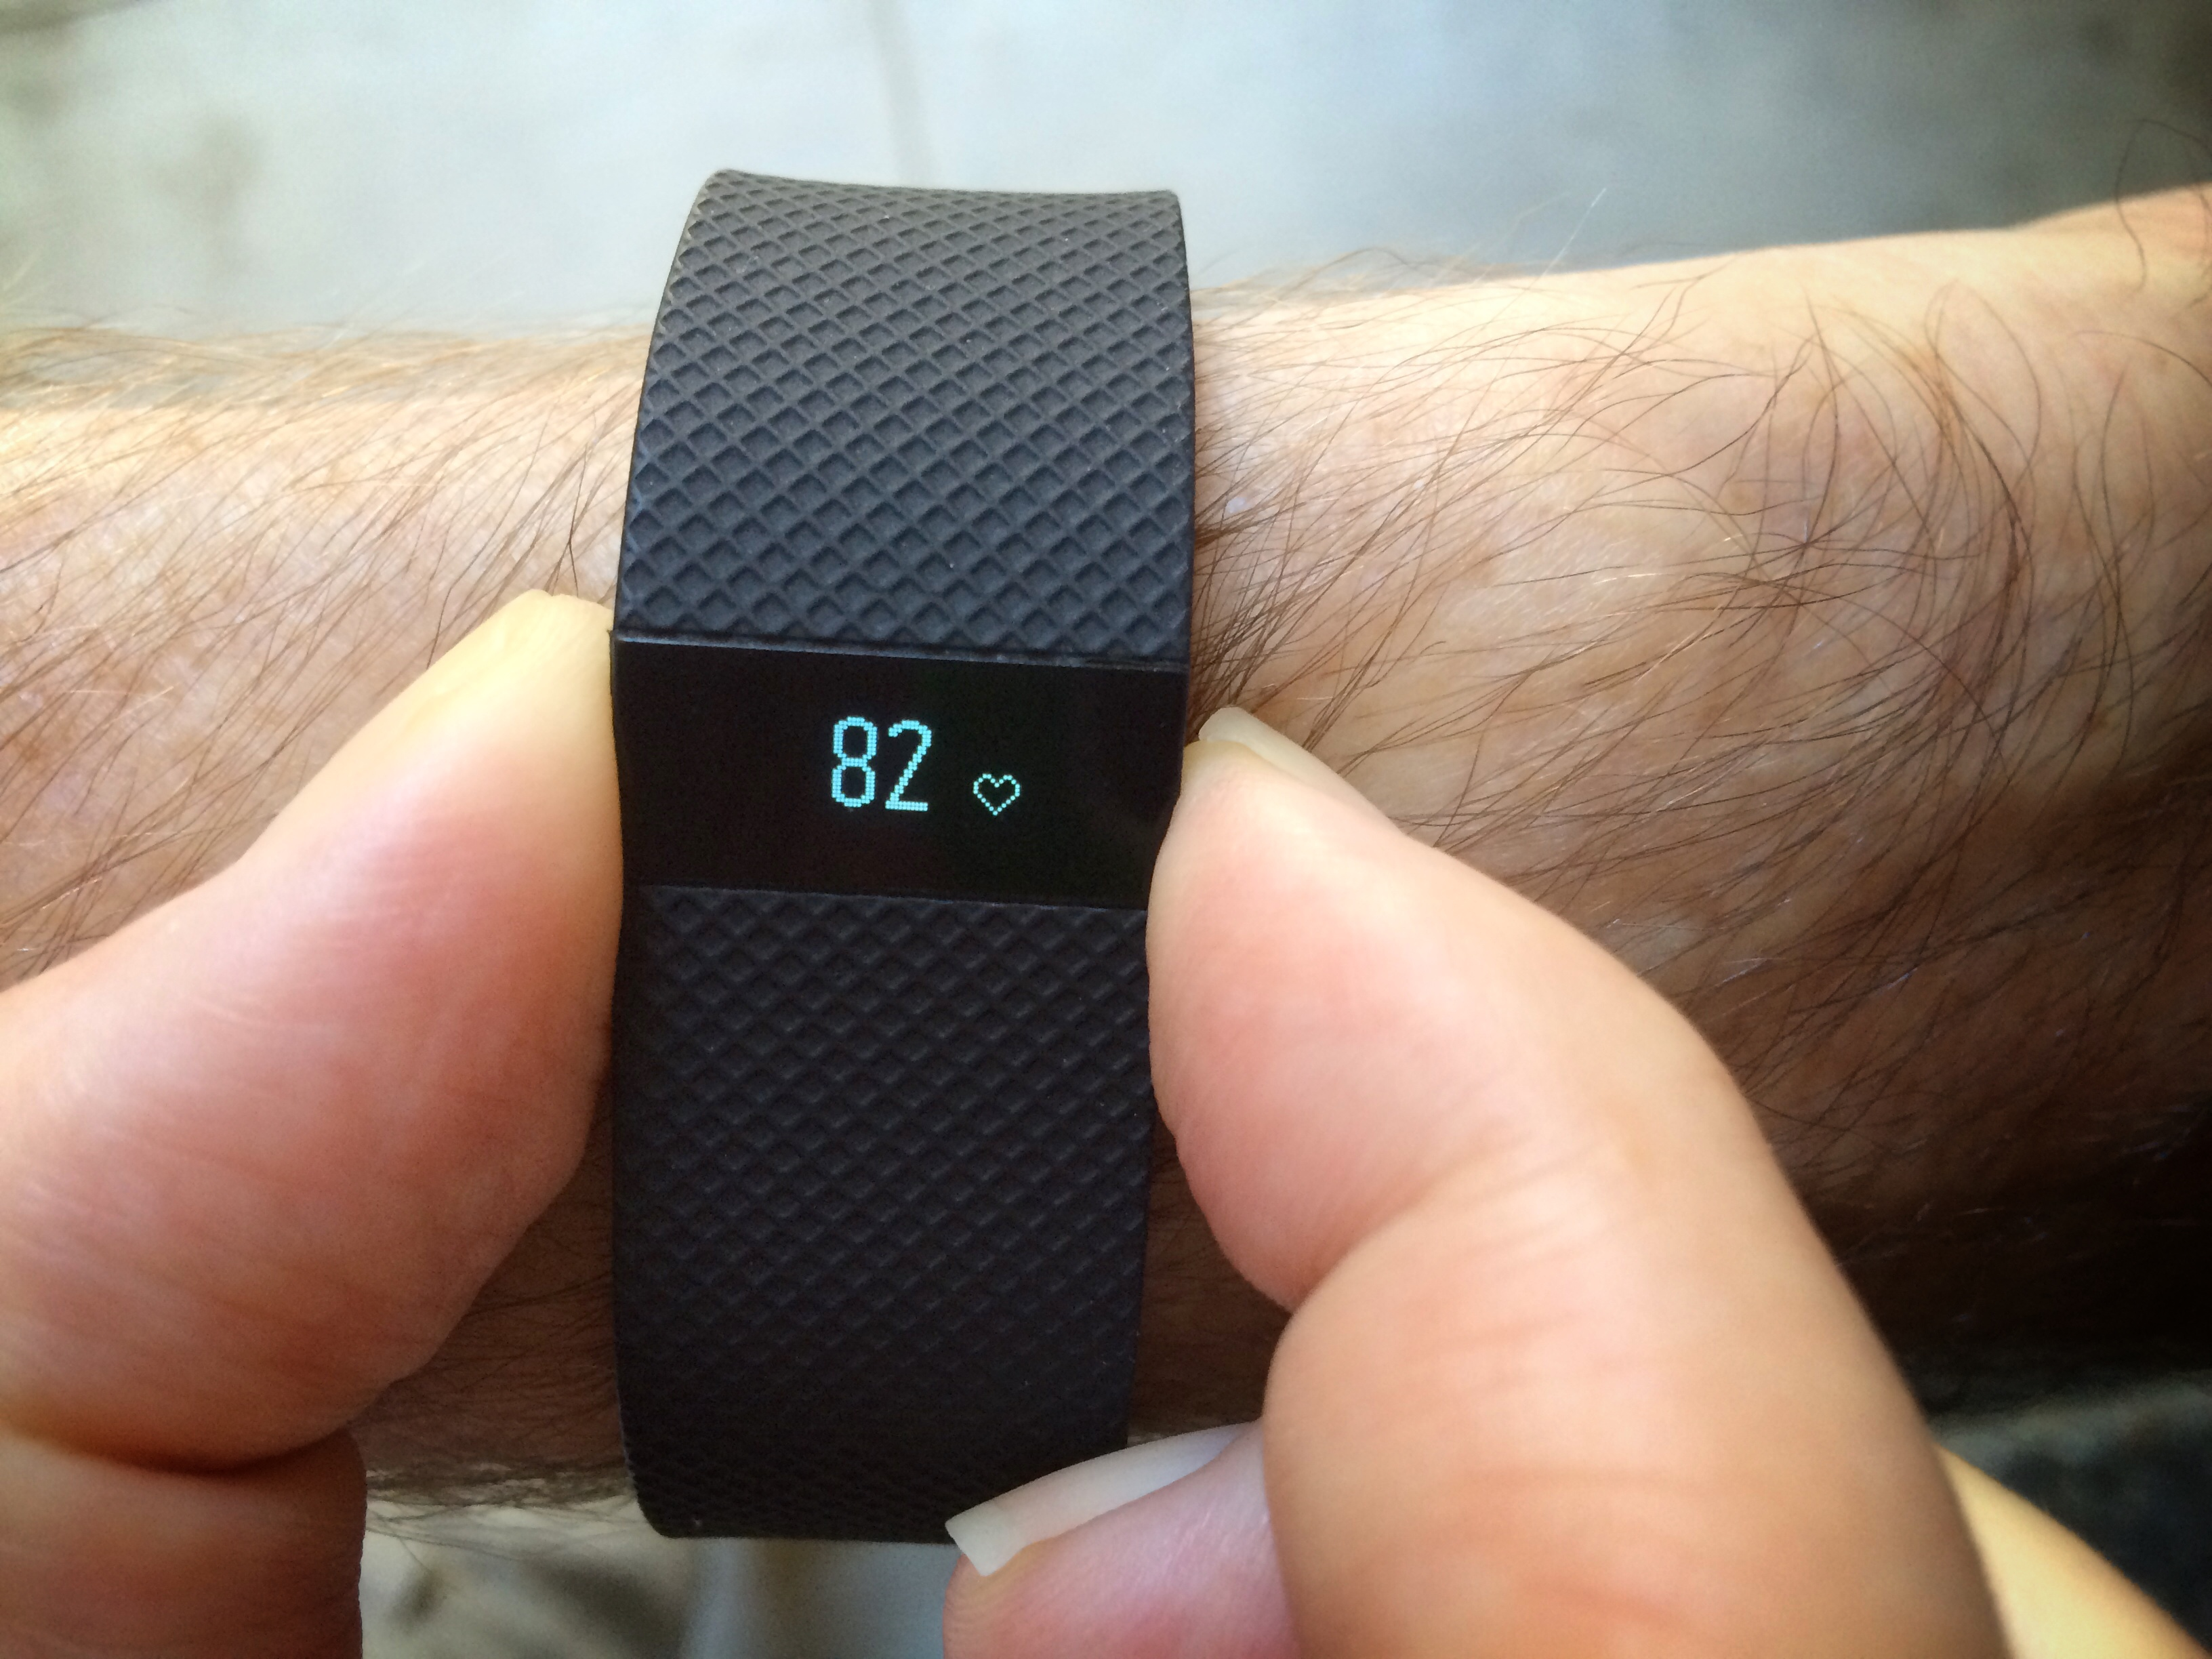 Man checks his heart rate on a FitBit Charge HR wearable activity tracker and monitor